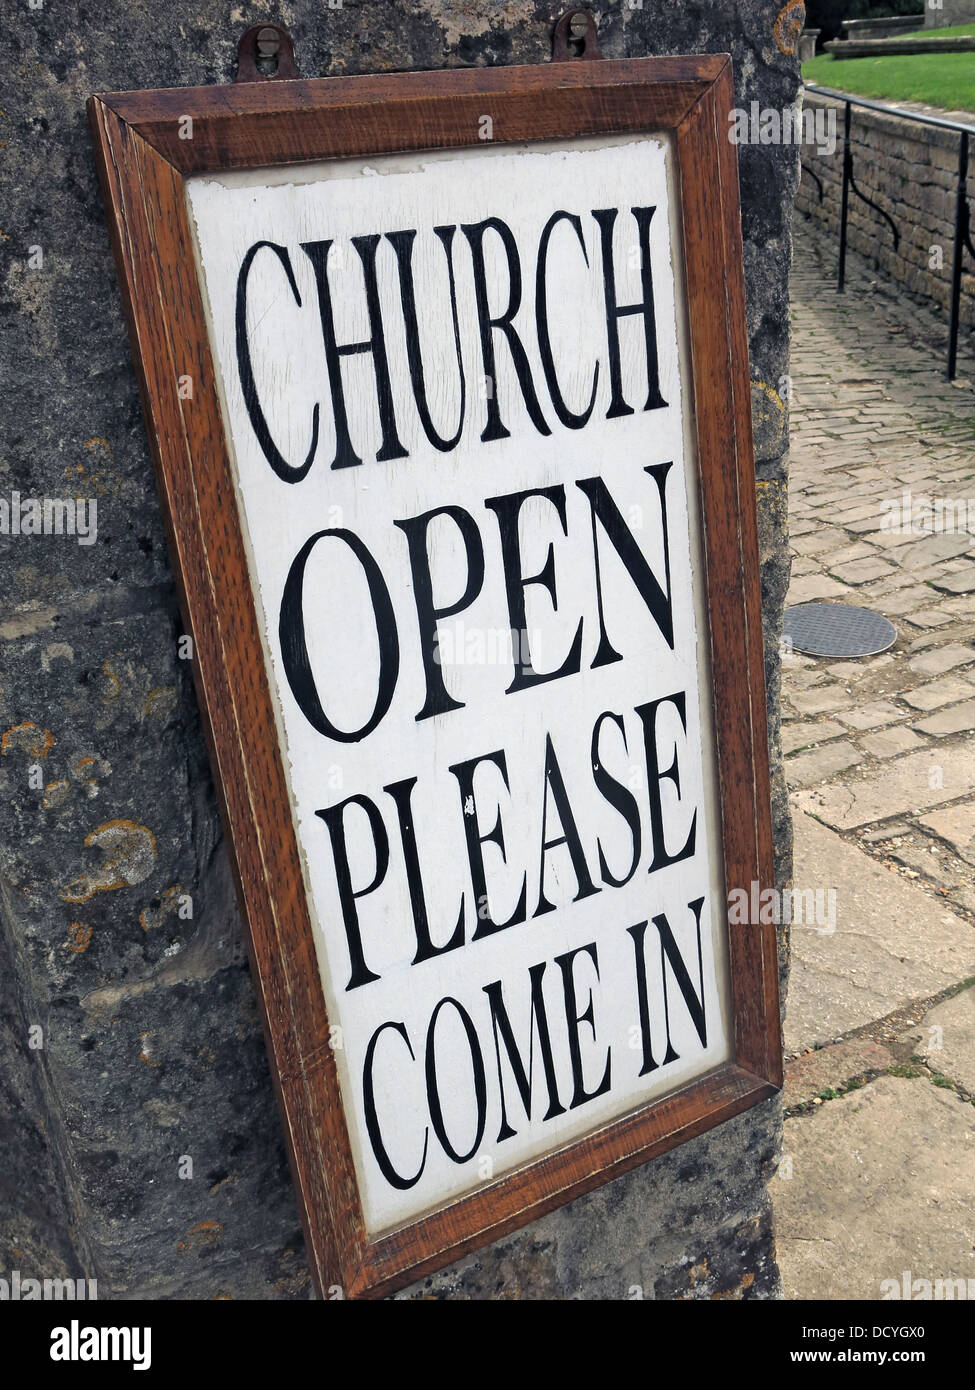 Church Open Sign, Please Come In - Stock Image